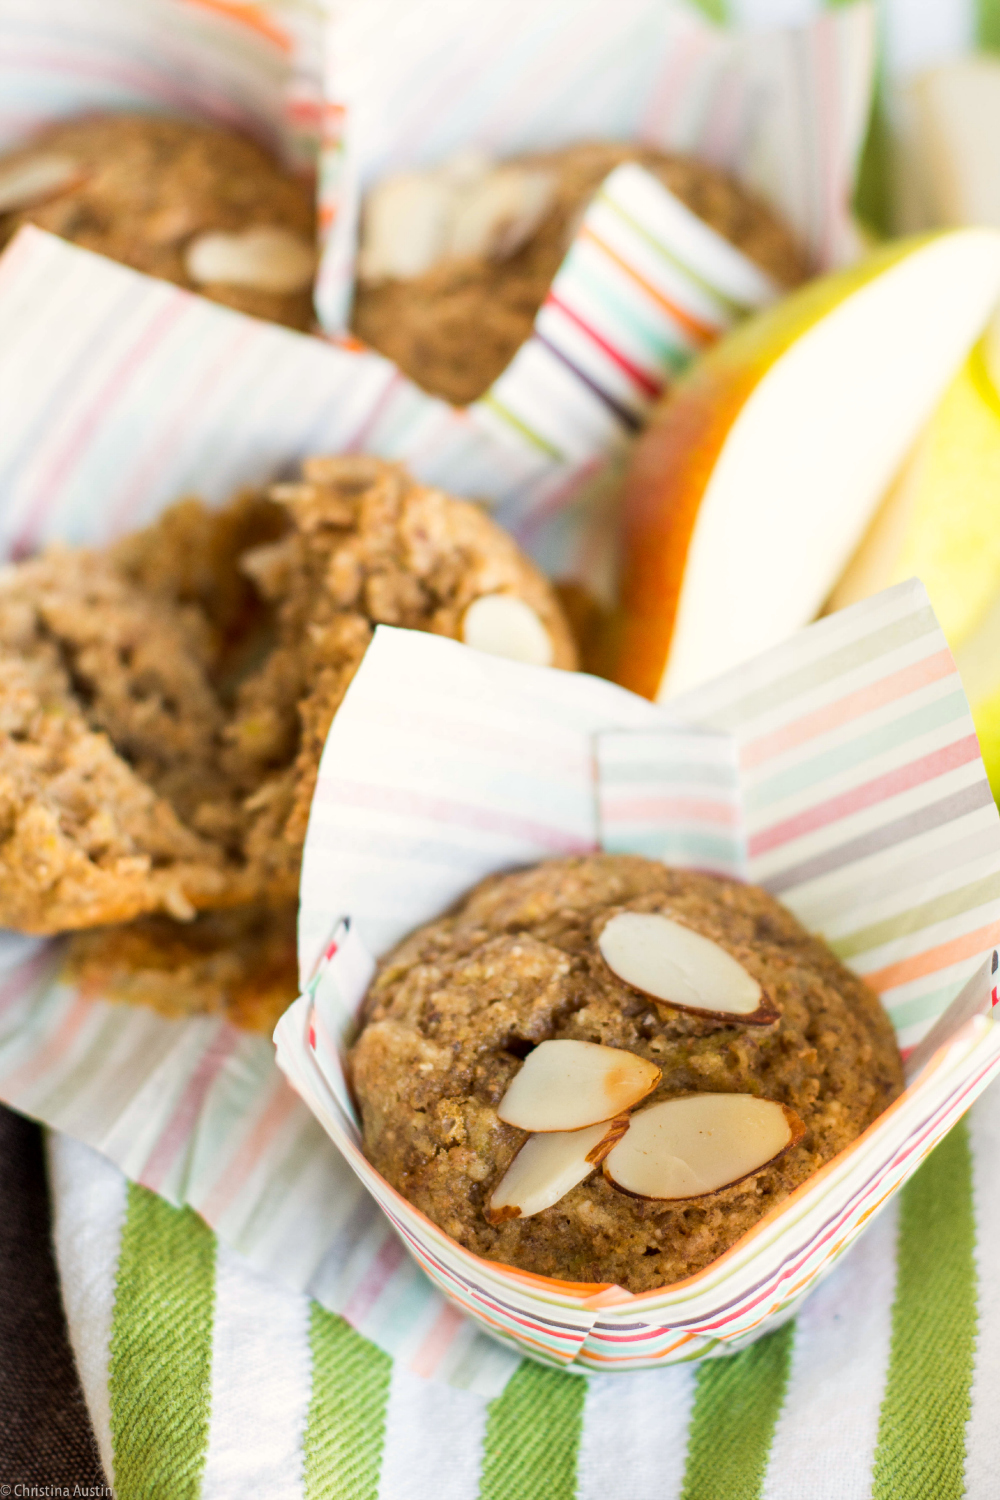 Spiced Pear and Almond Muffins with whole wheat flour and milled flaxseed.